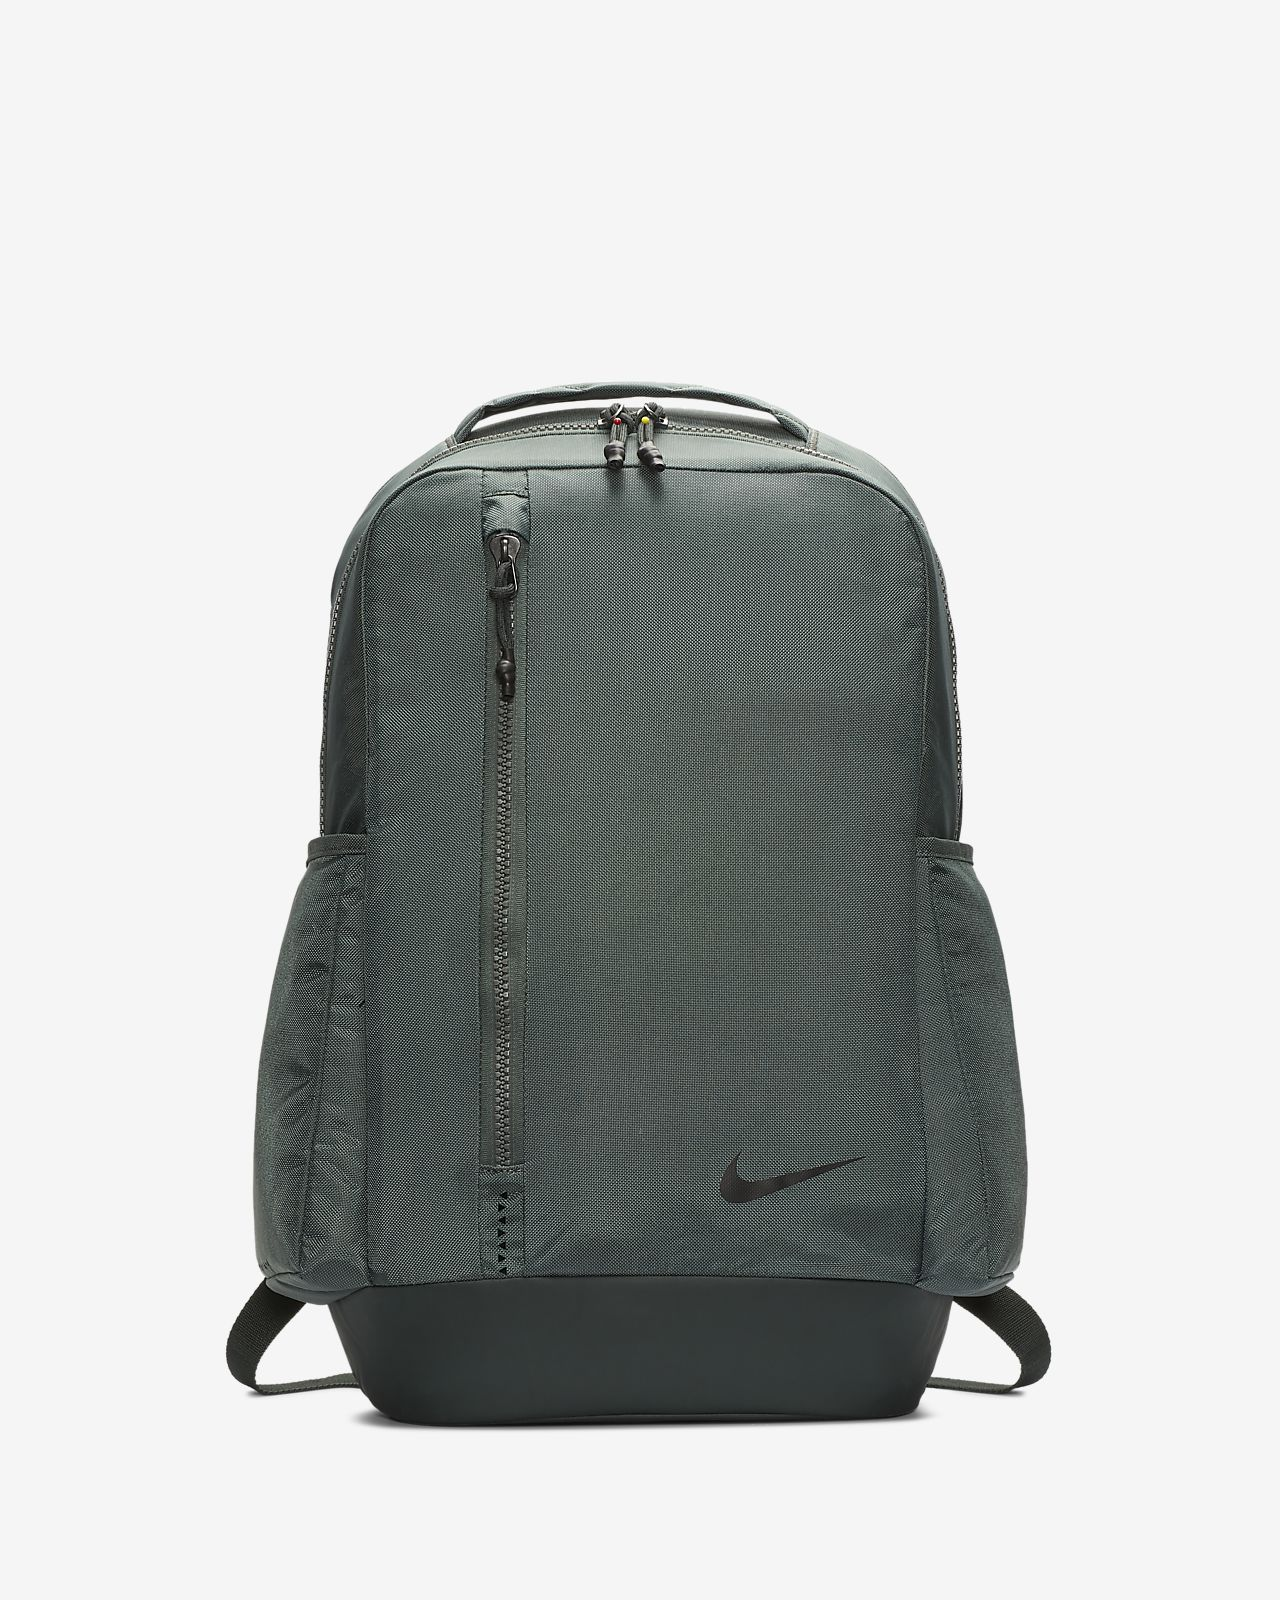 80384b5e220c Nike Vapor Power 2.0 Training Backpack. Nike.com